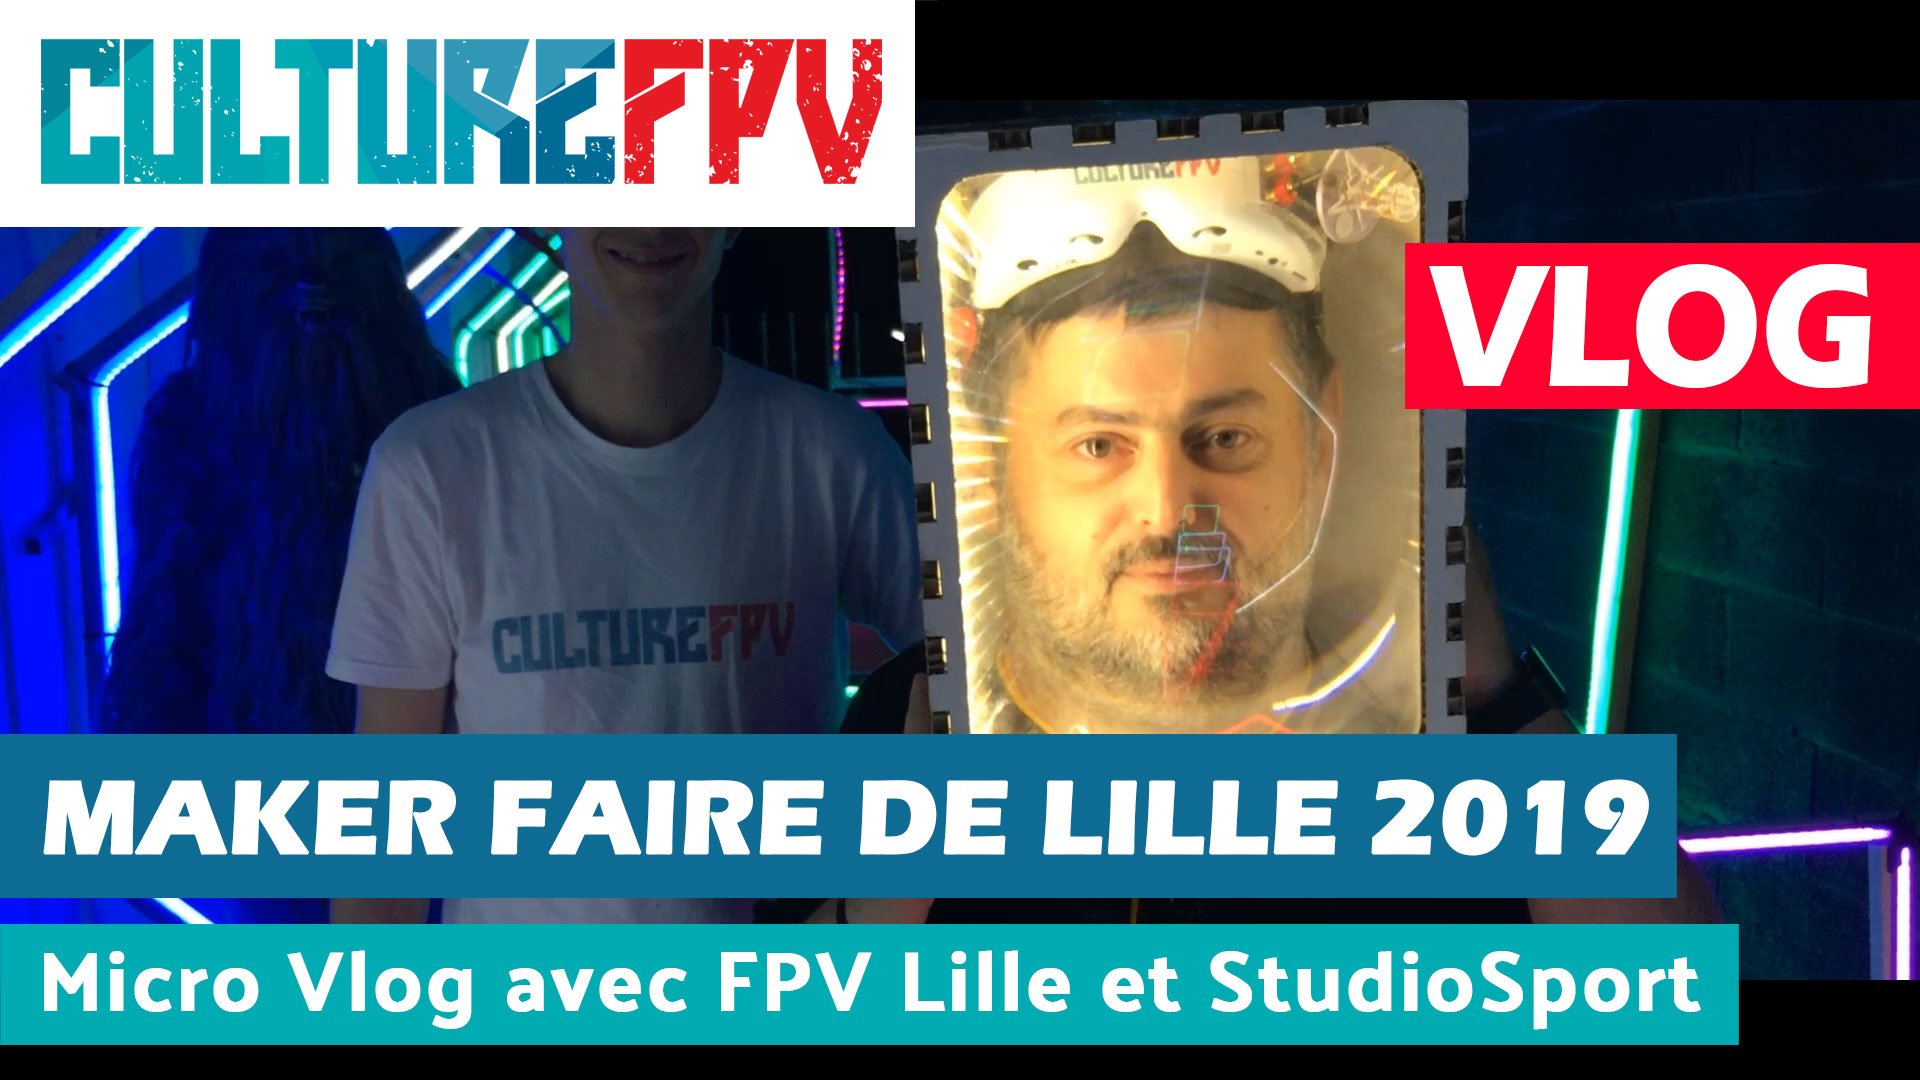 maker faire Lille 2019